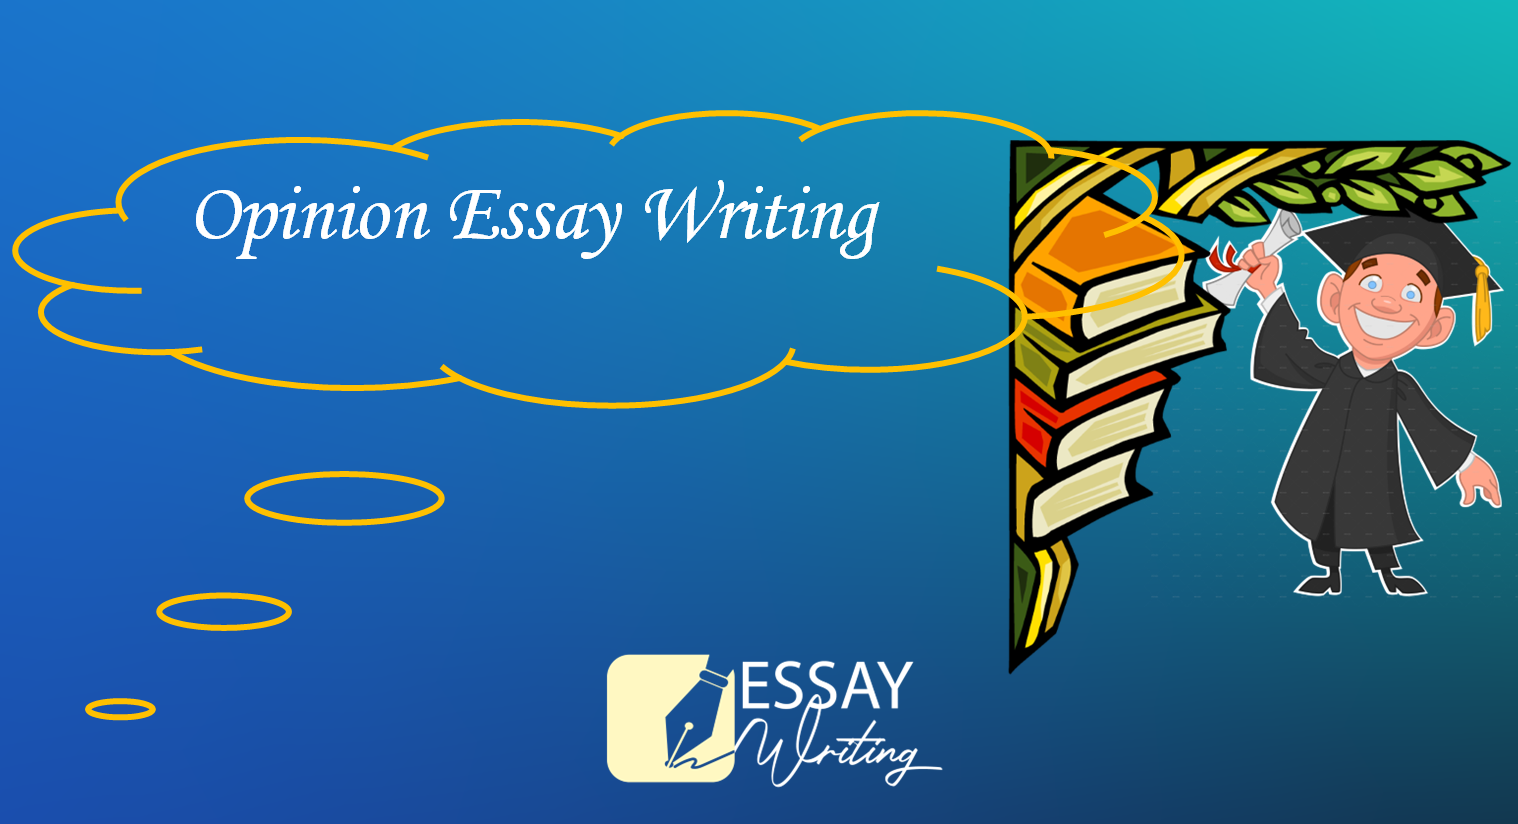 How To write an Opinion Essay: Free Examples and Guide